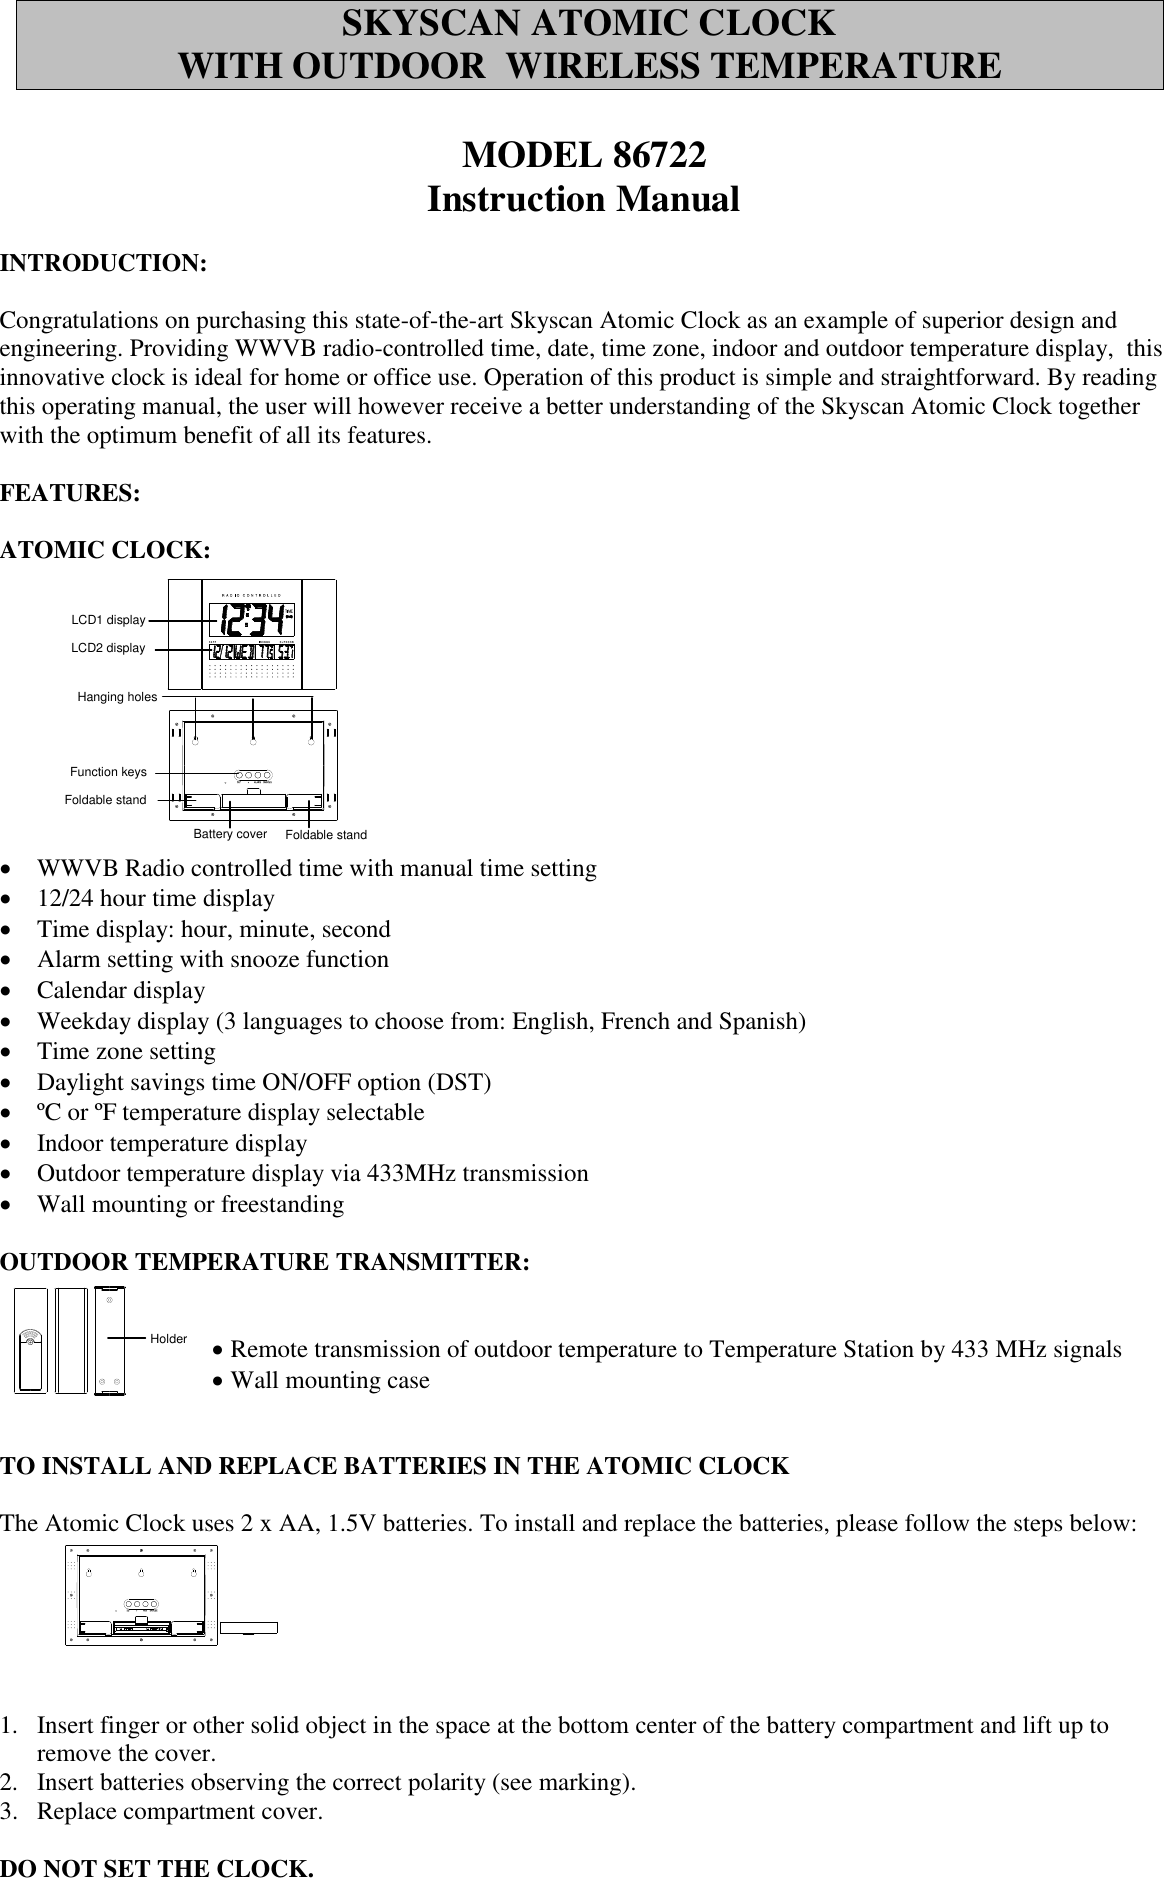 Skyscan 86722 Instruction Manual ATOMIC CLOCK WITH OUTDOOR WIRELESS